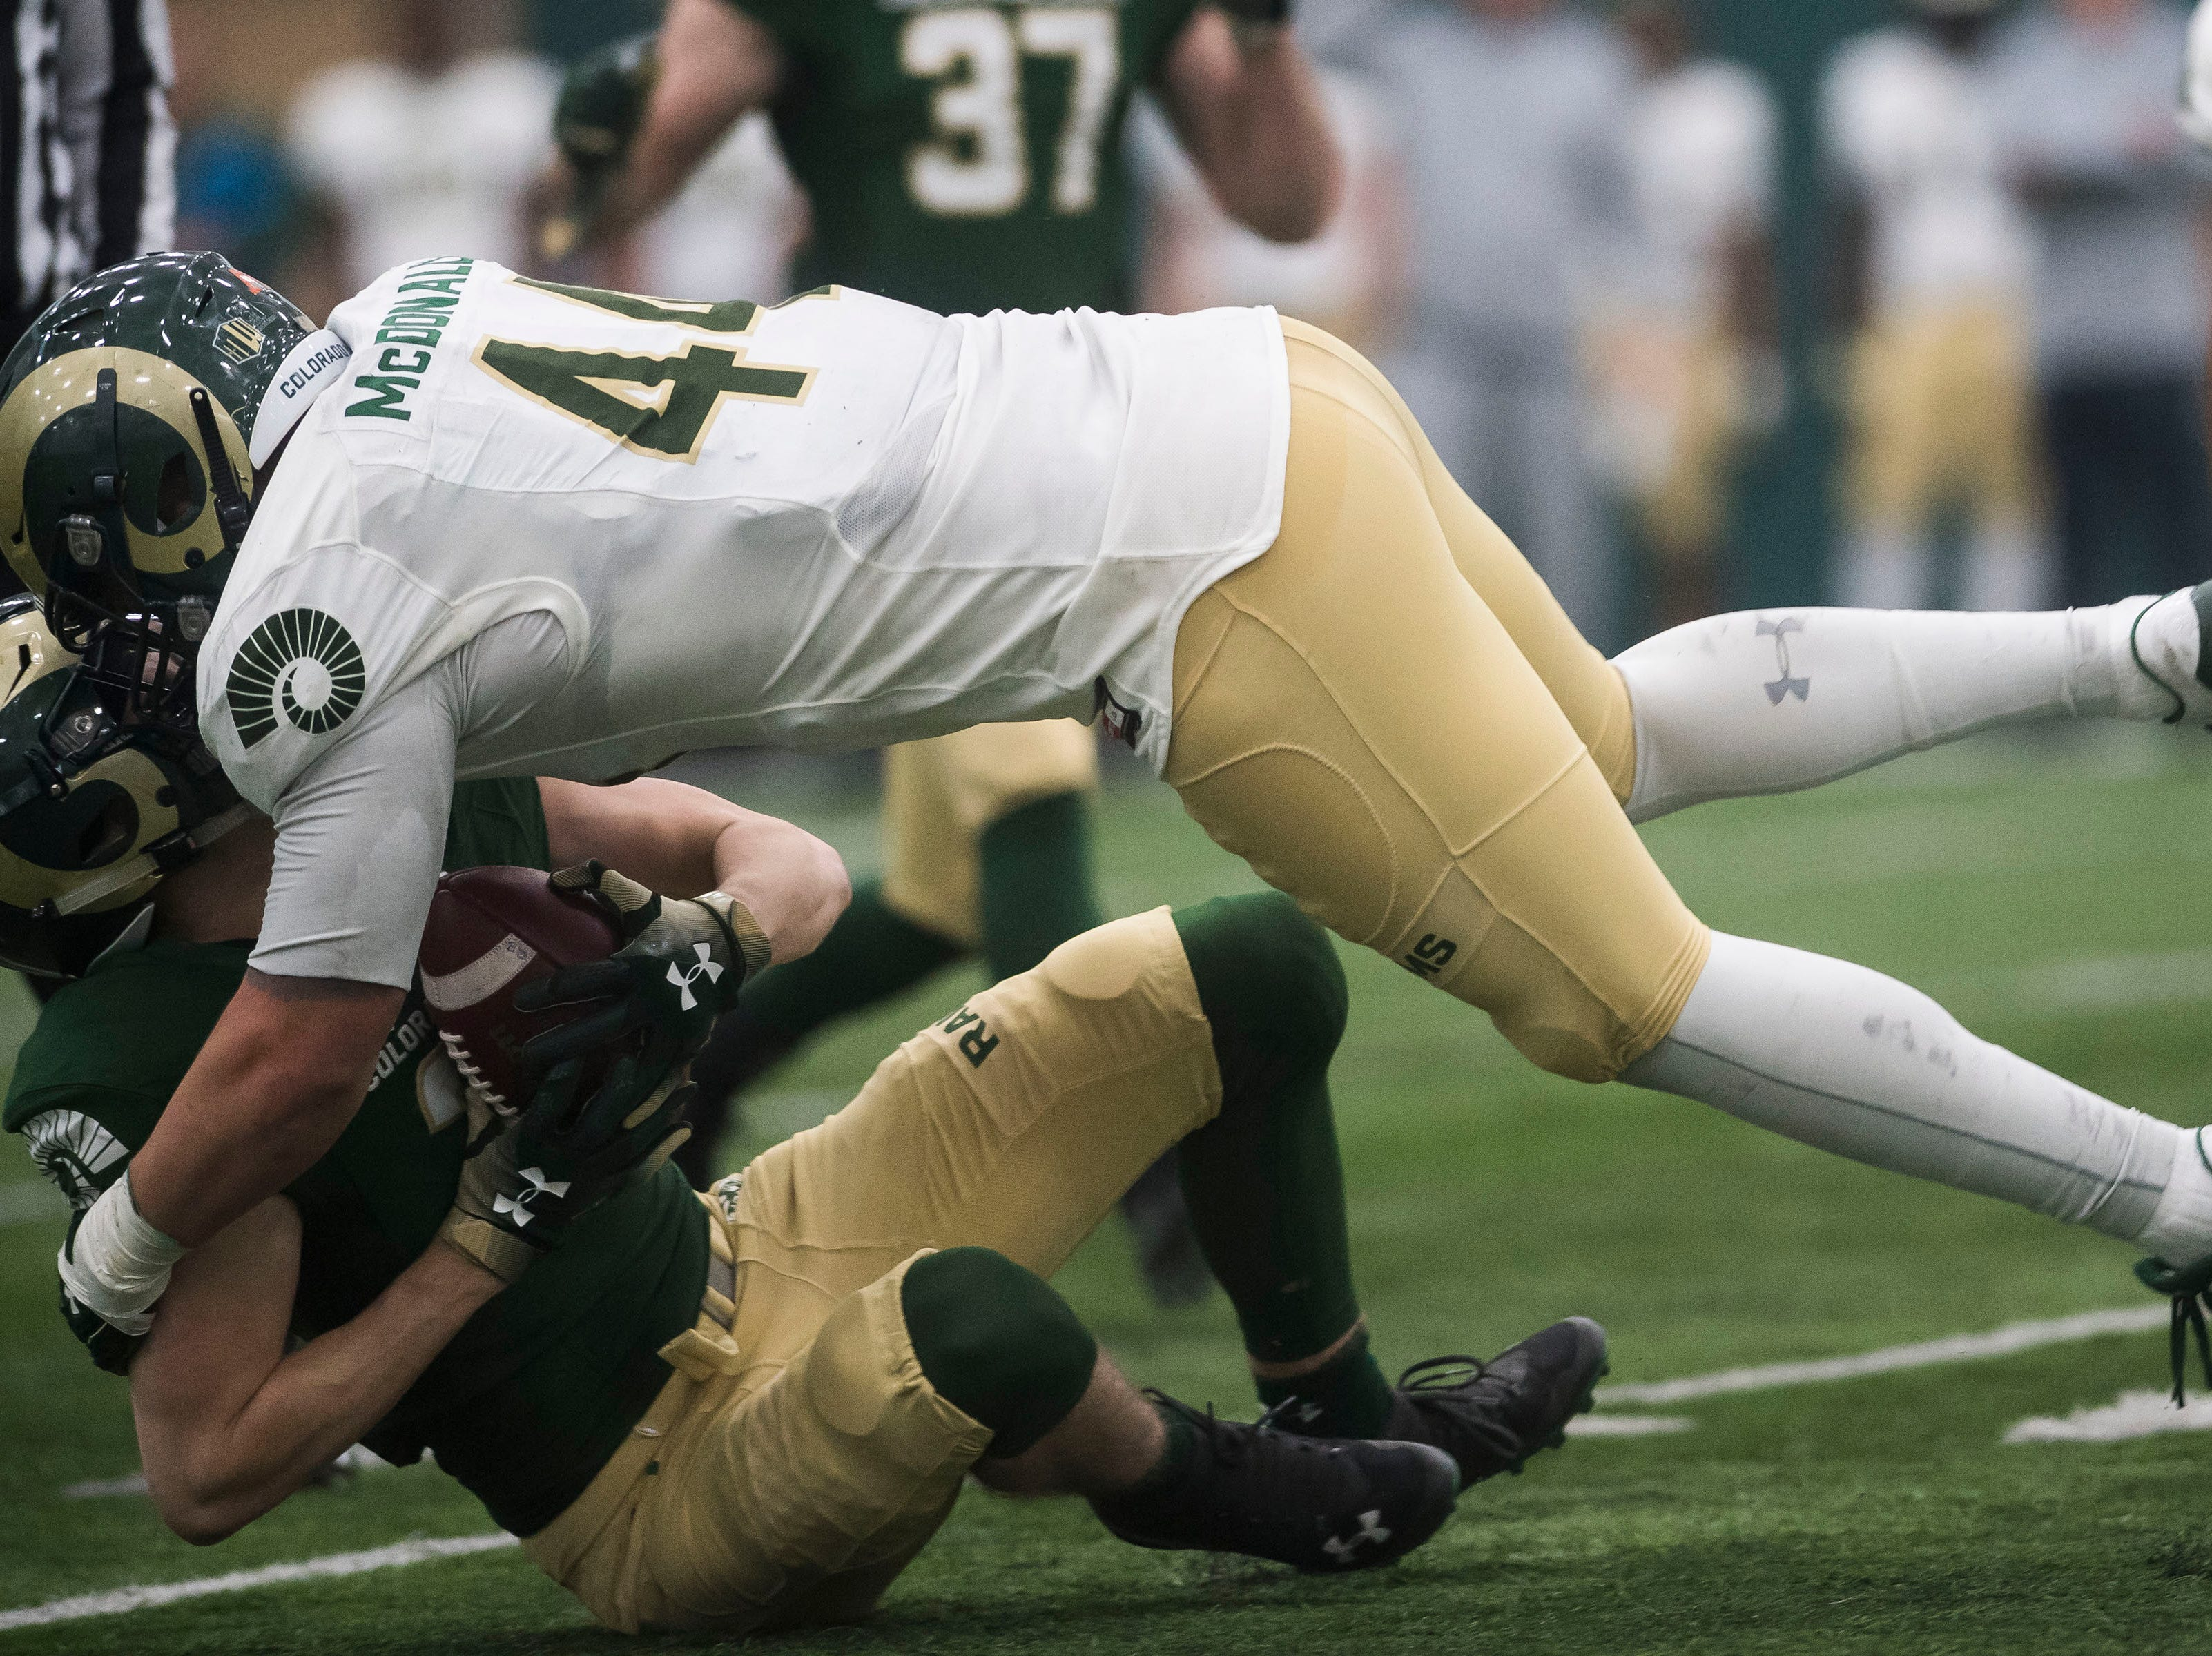 CSU freshman wide receiver Ryan Lynch (31) takes a hard shot from junior linebacker Max McDonald (44) during CSU's Spring game on Thursday, March 14, 2019, at their indoor practice facility in Fort Collins, Colo.